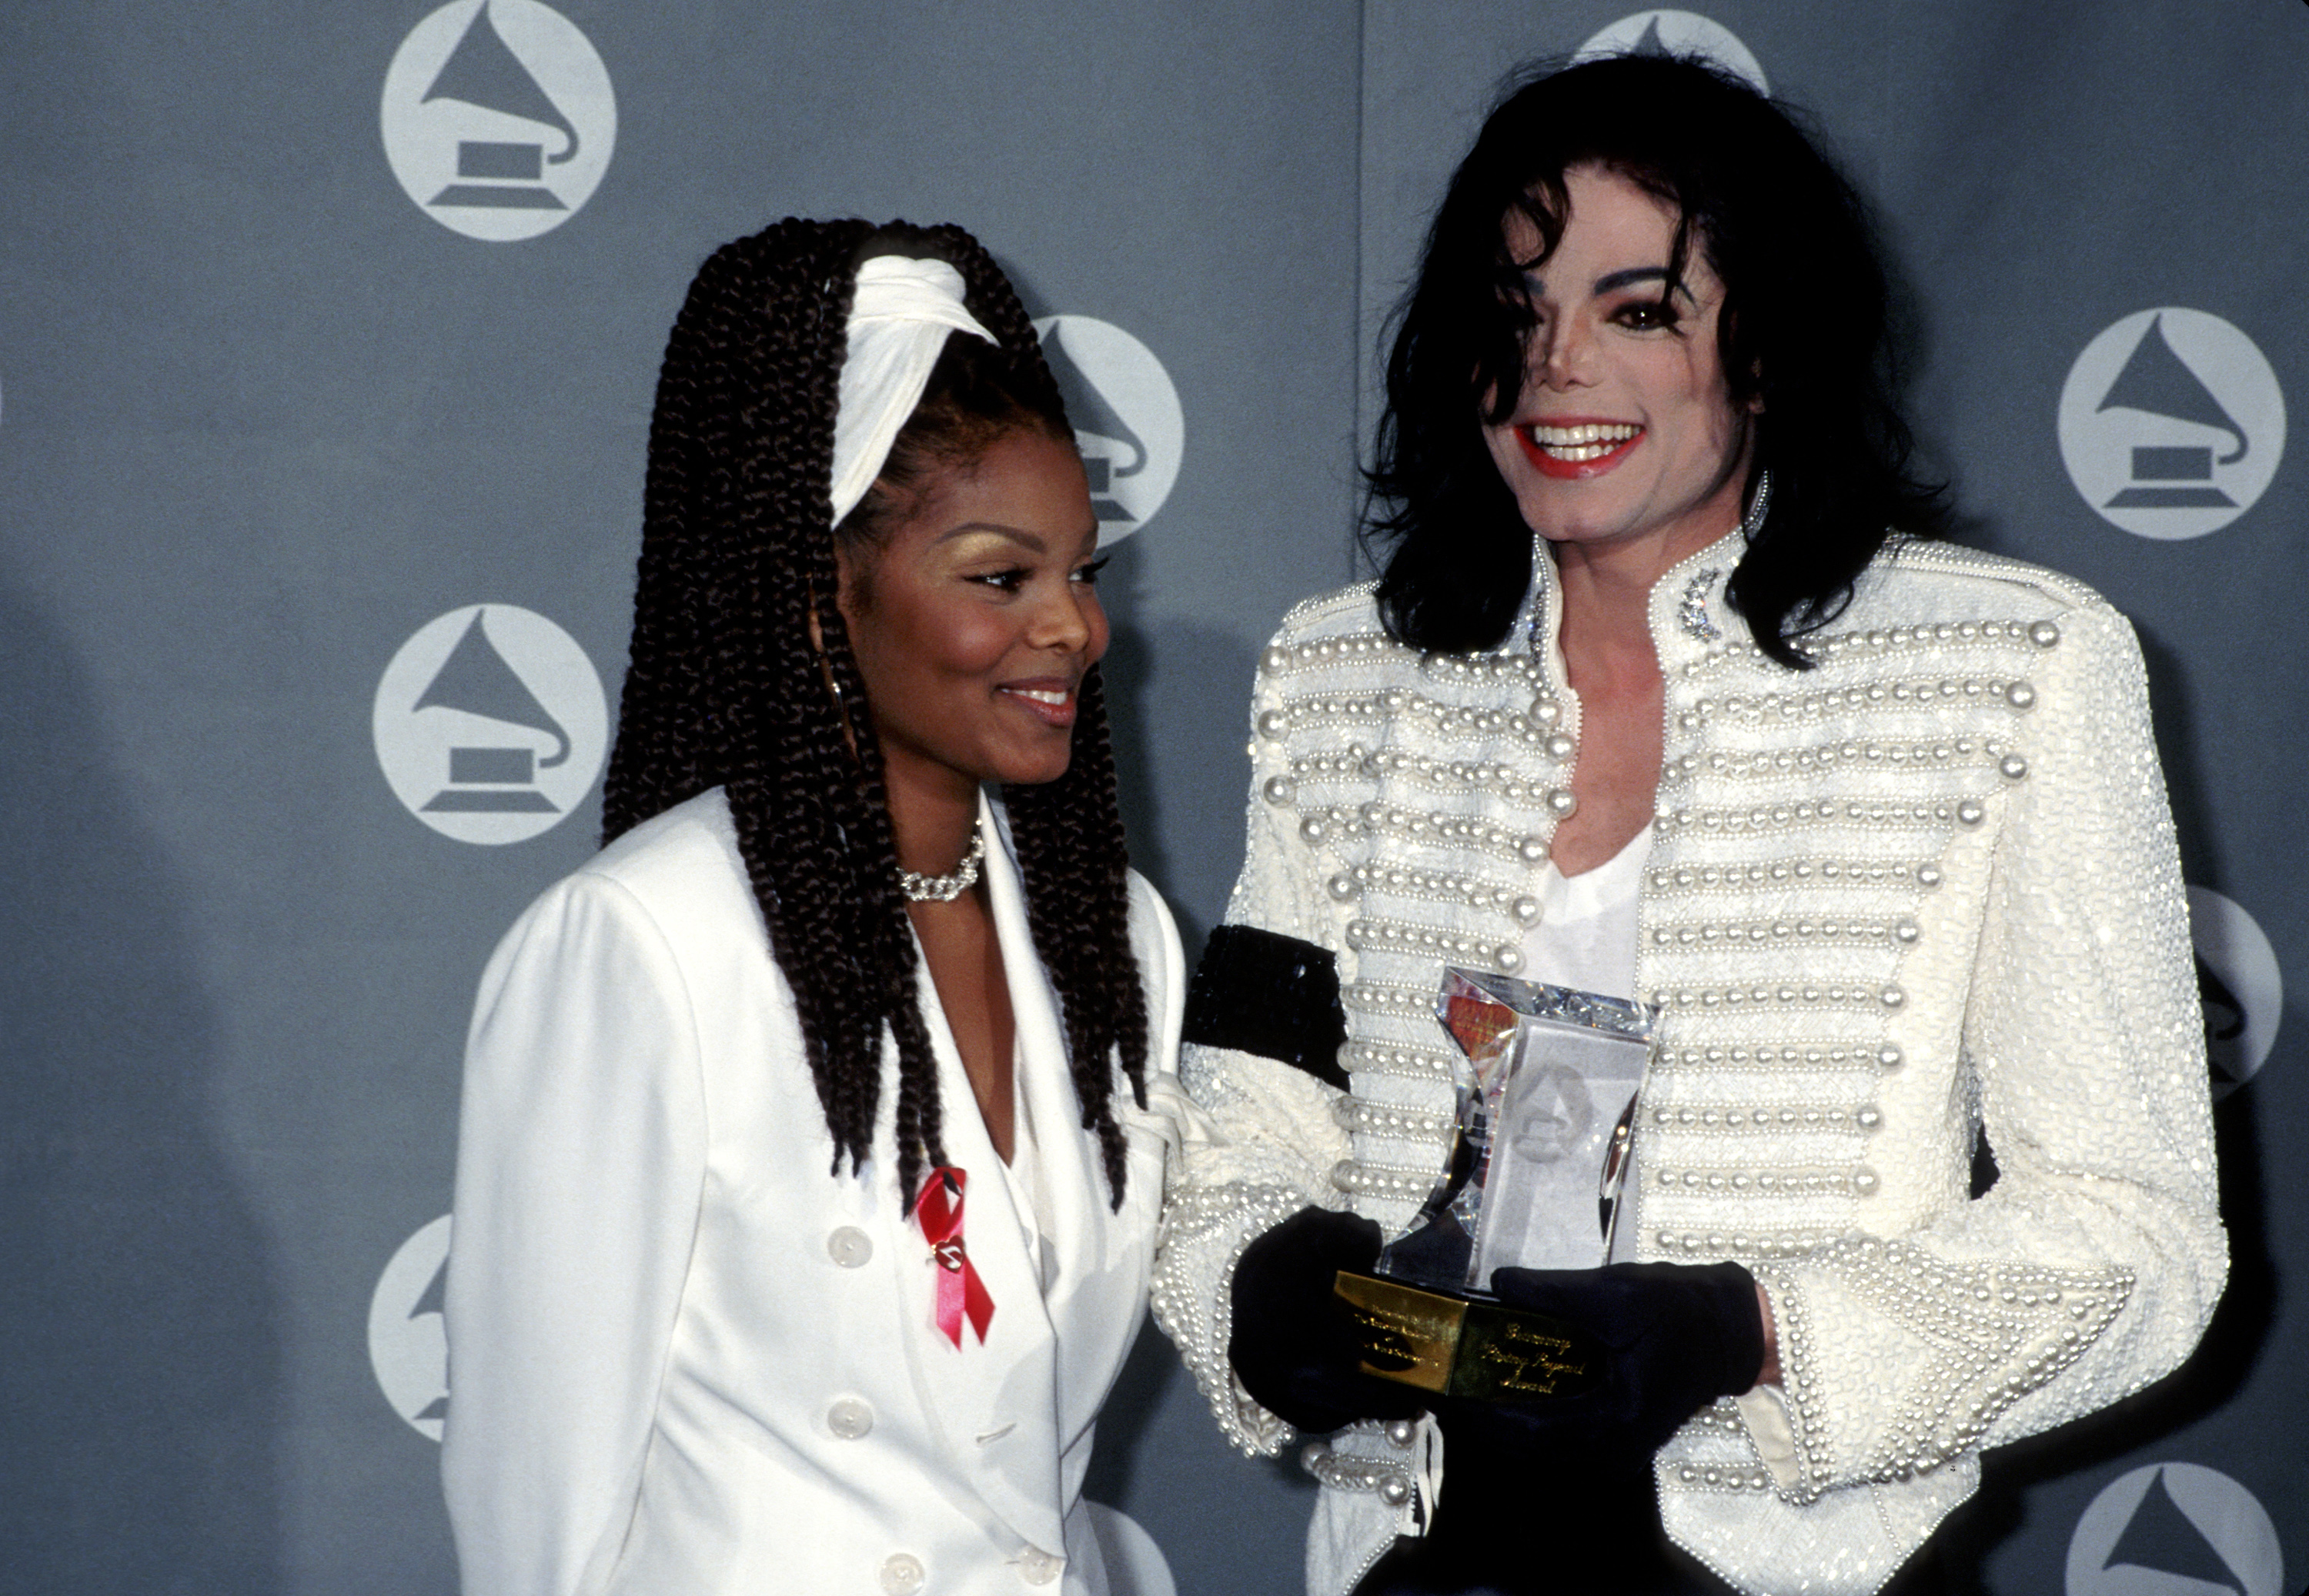 Janet Jackson first heard Michael Jackson's hit Thriller while sat in his car